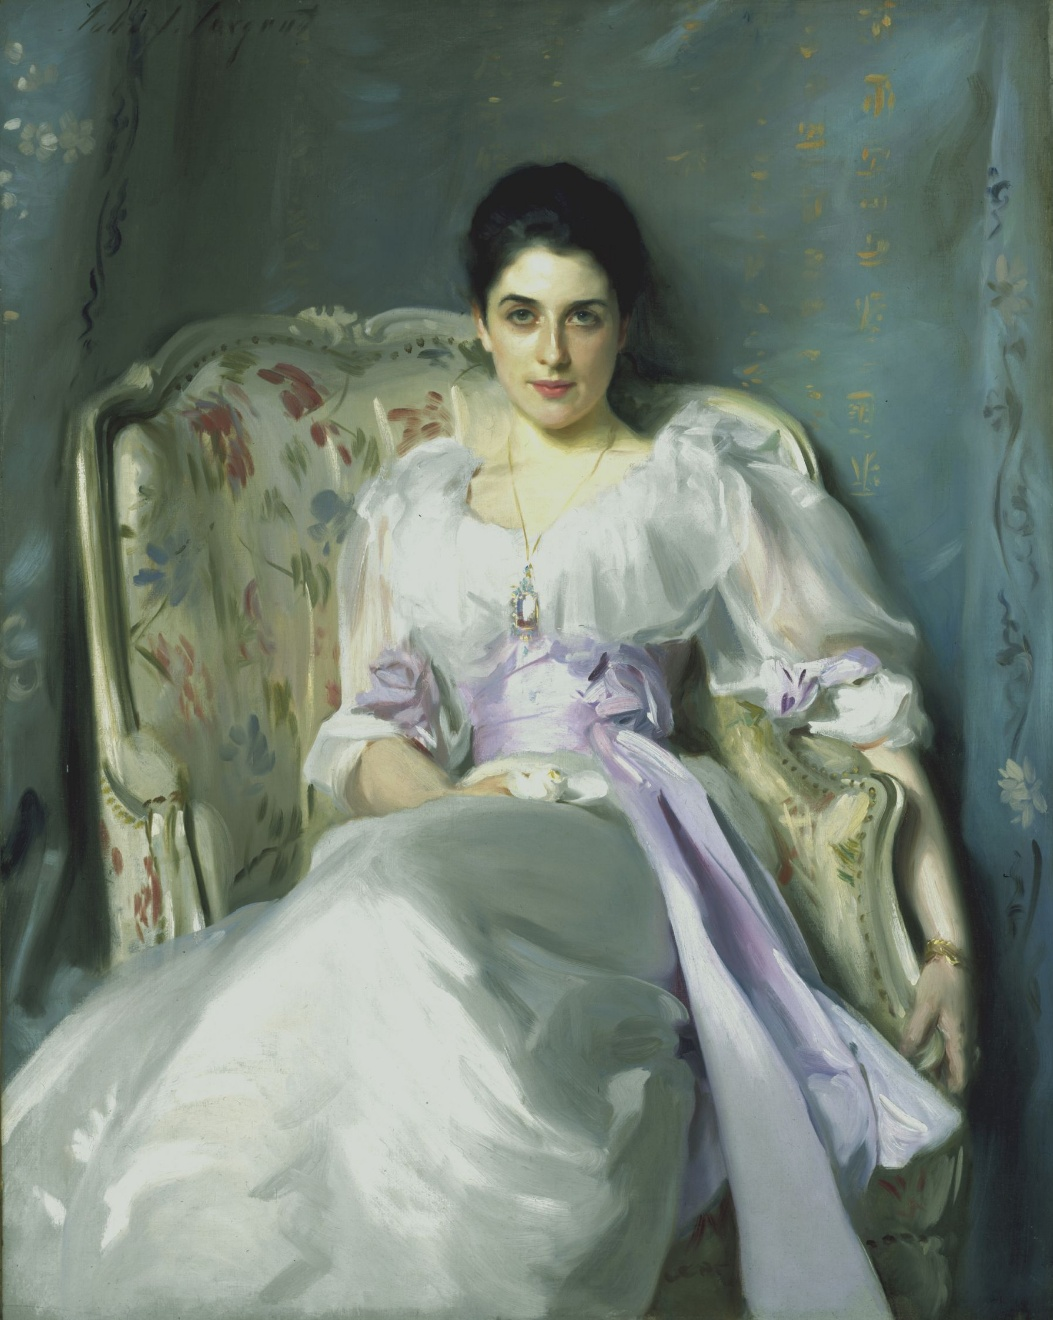 http://upload.wikimedia.org/wikipedia/commons/2/26/Sargent_Lady_Agnew_of_Lochnaw.jpg